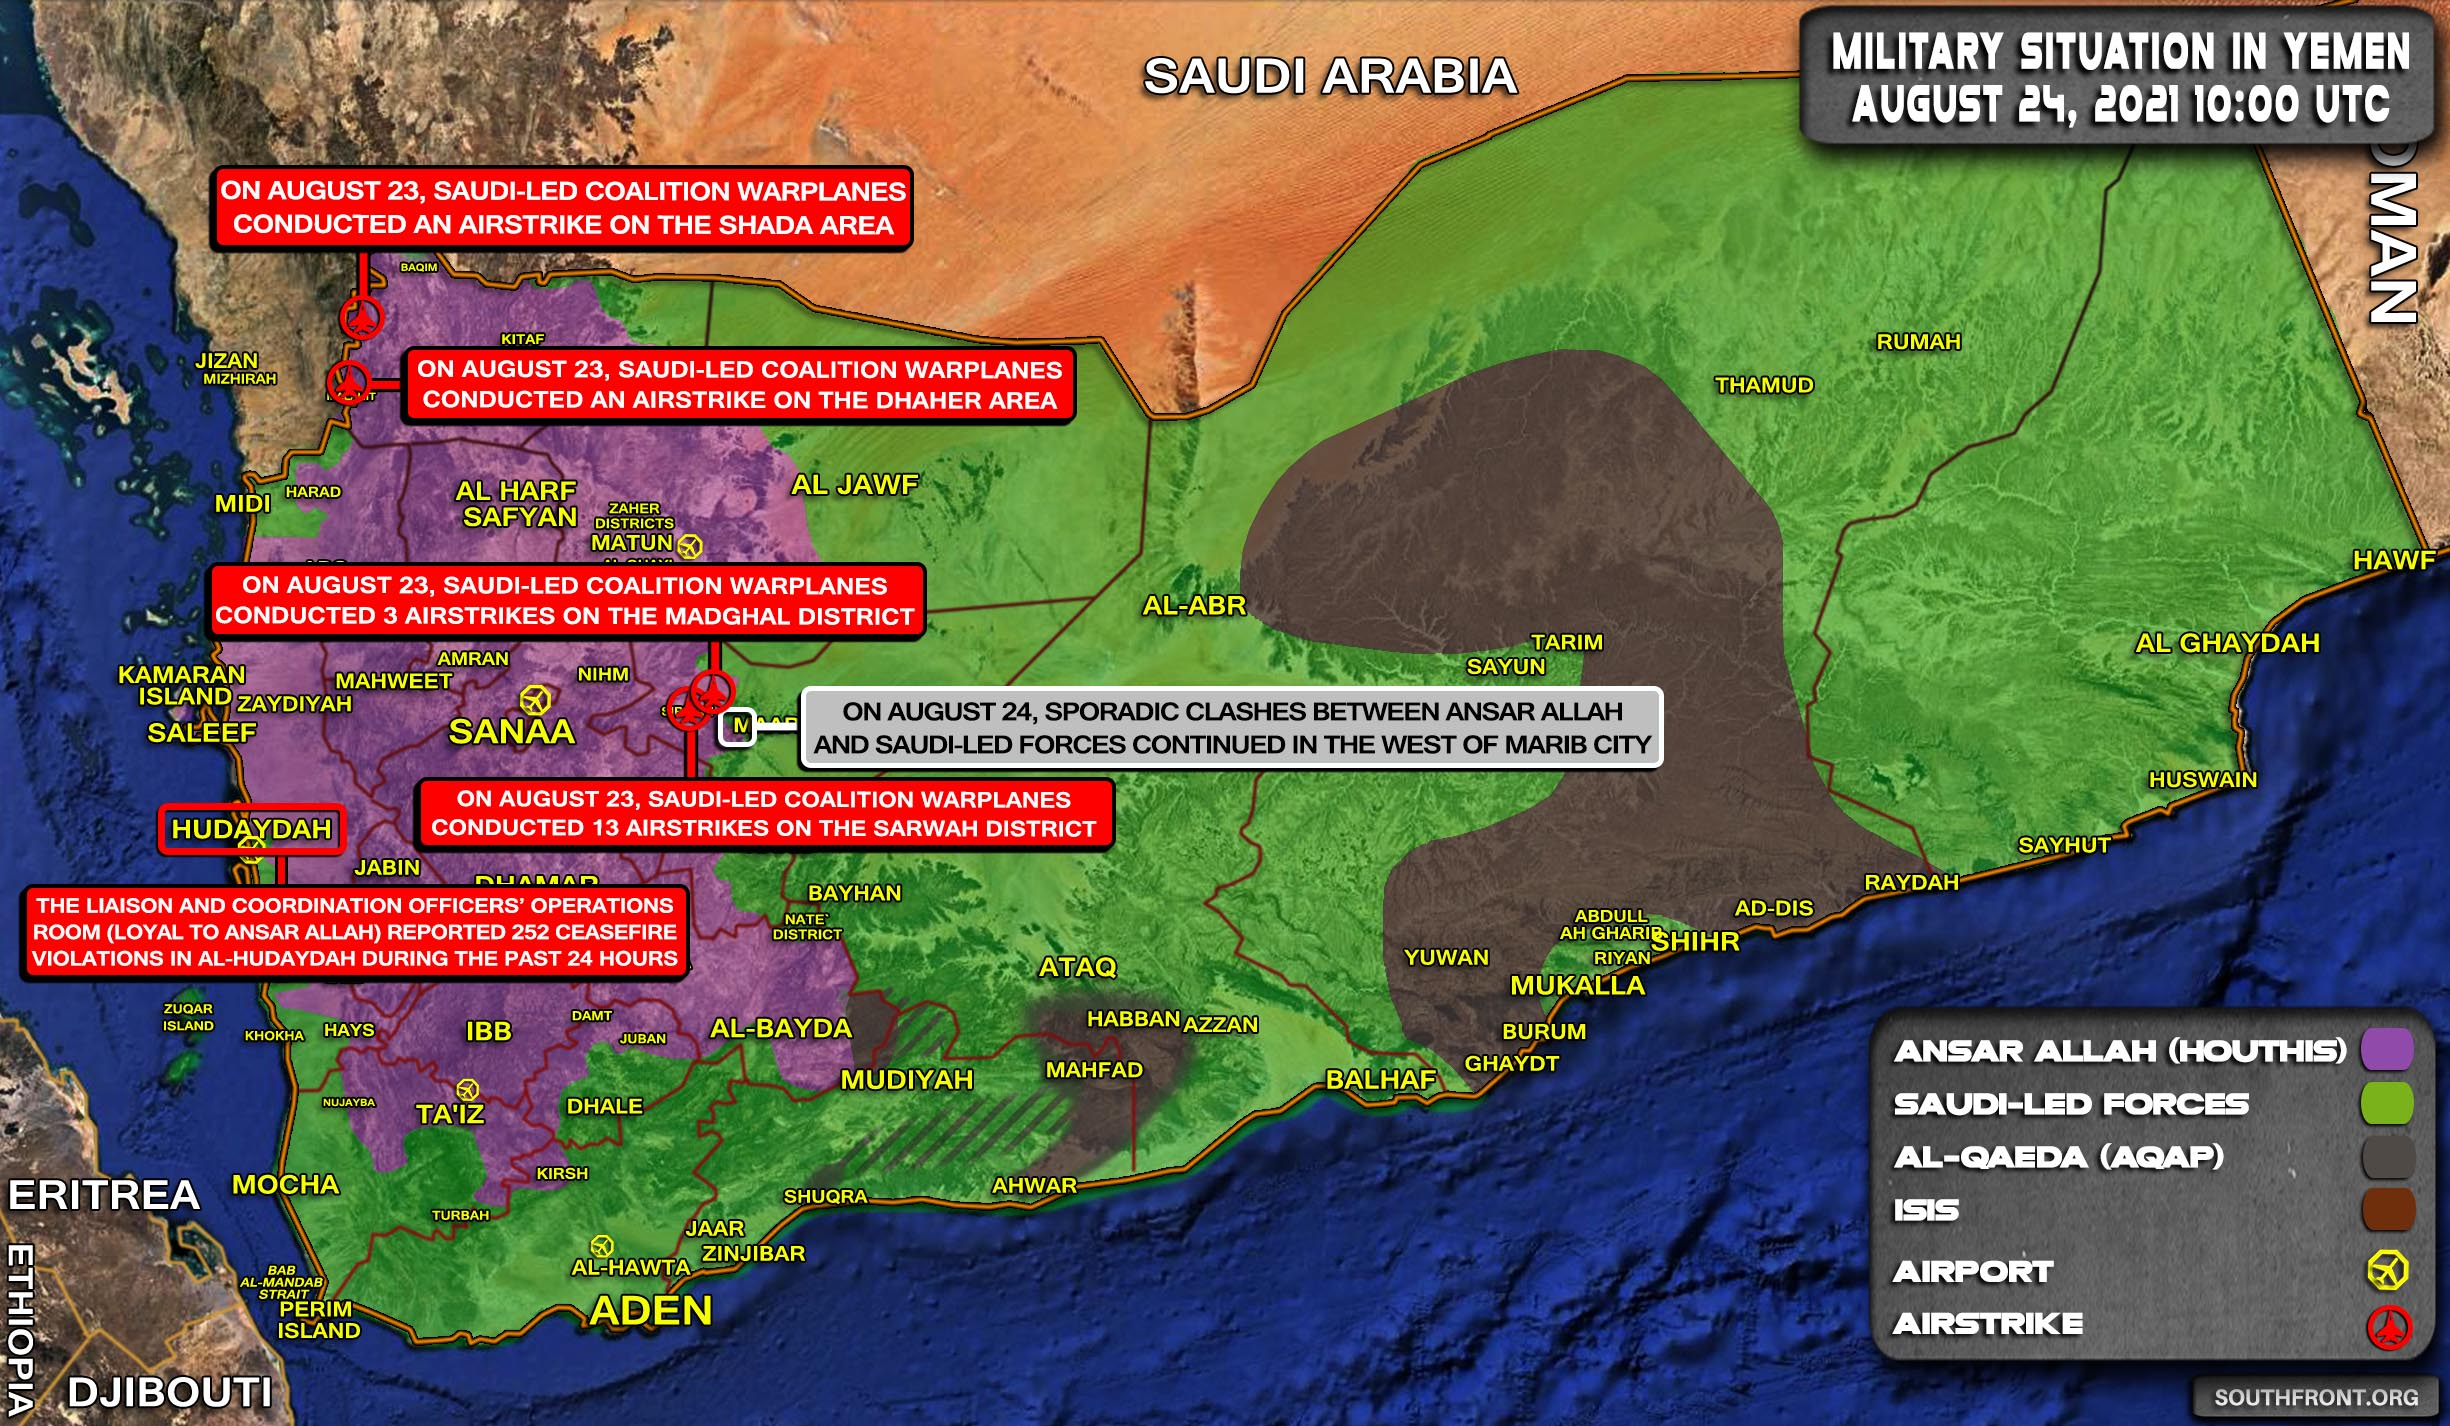 Military Situation In Yemen On August 24, 2021 (Map Update)